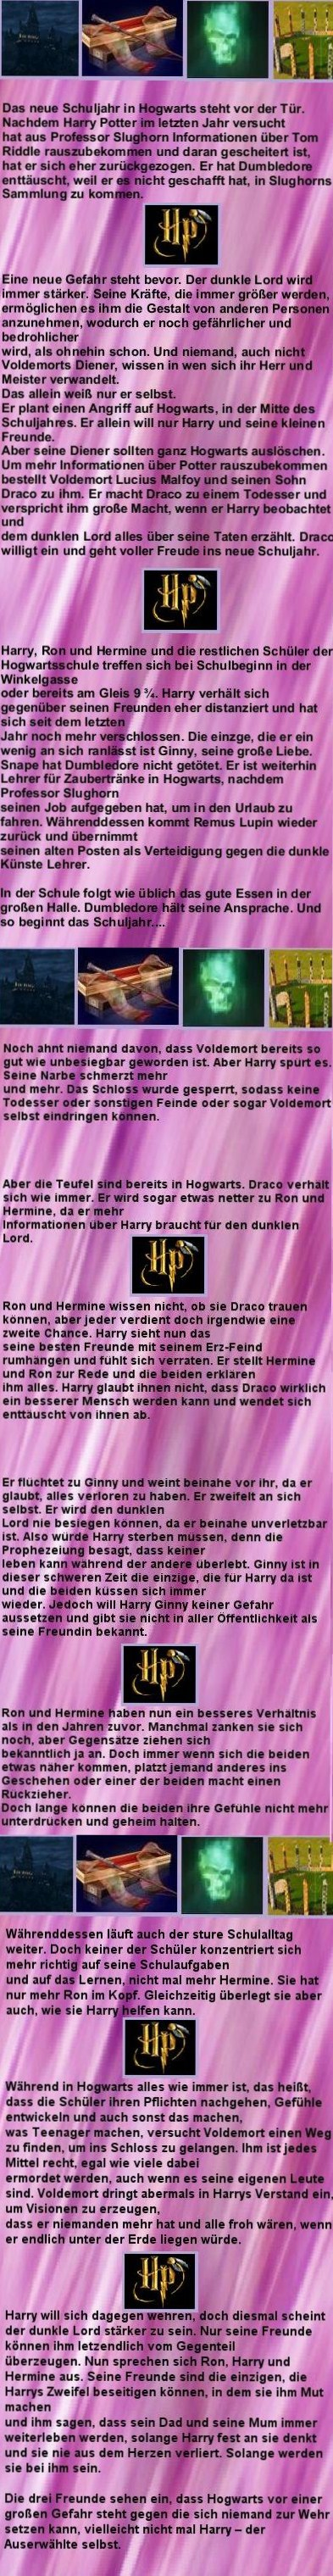 Harry Potter - Different magical Worlds F3fr-1t